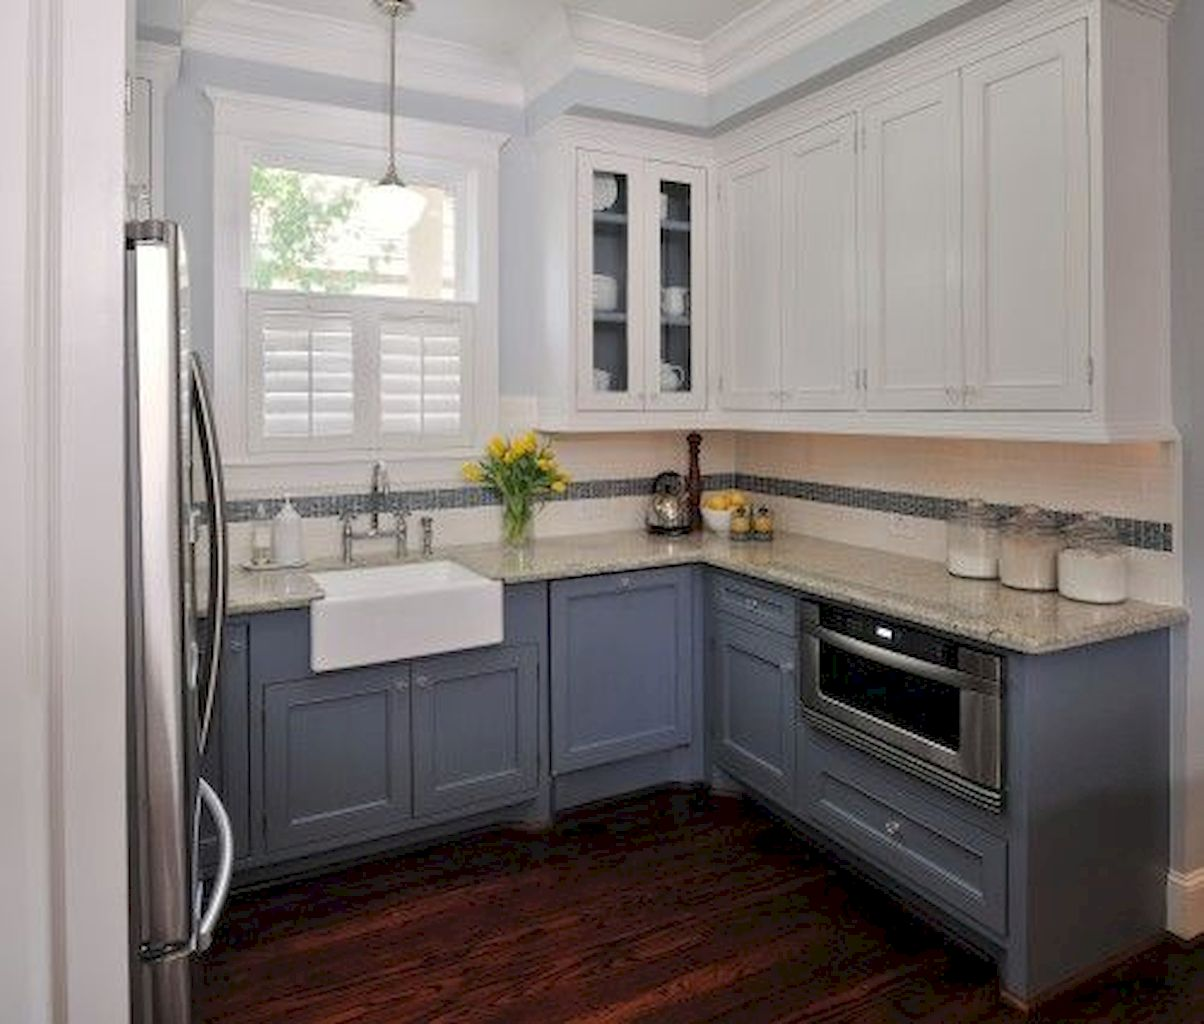 Kitchen Plan And Design For Small Room (72)